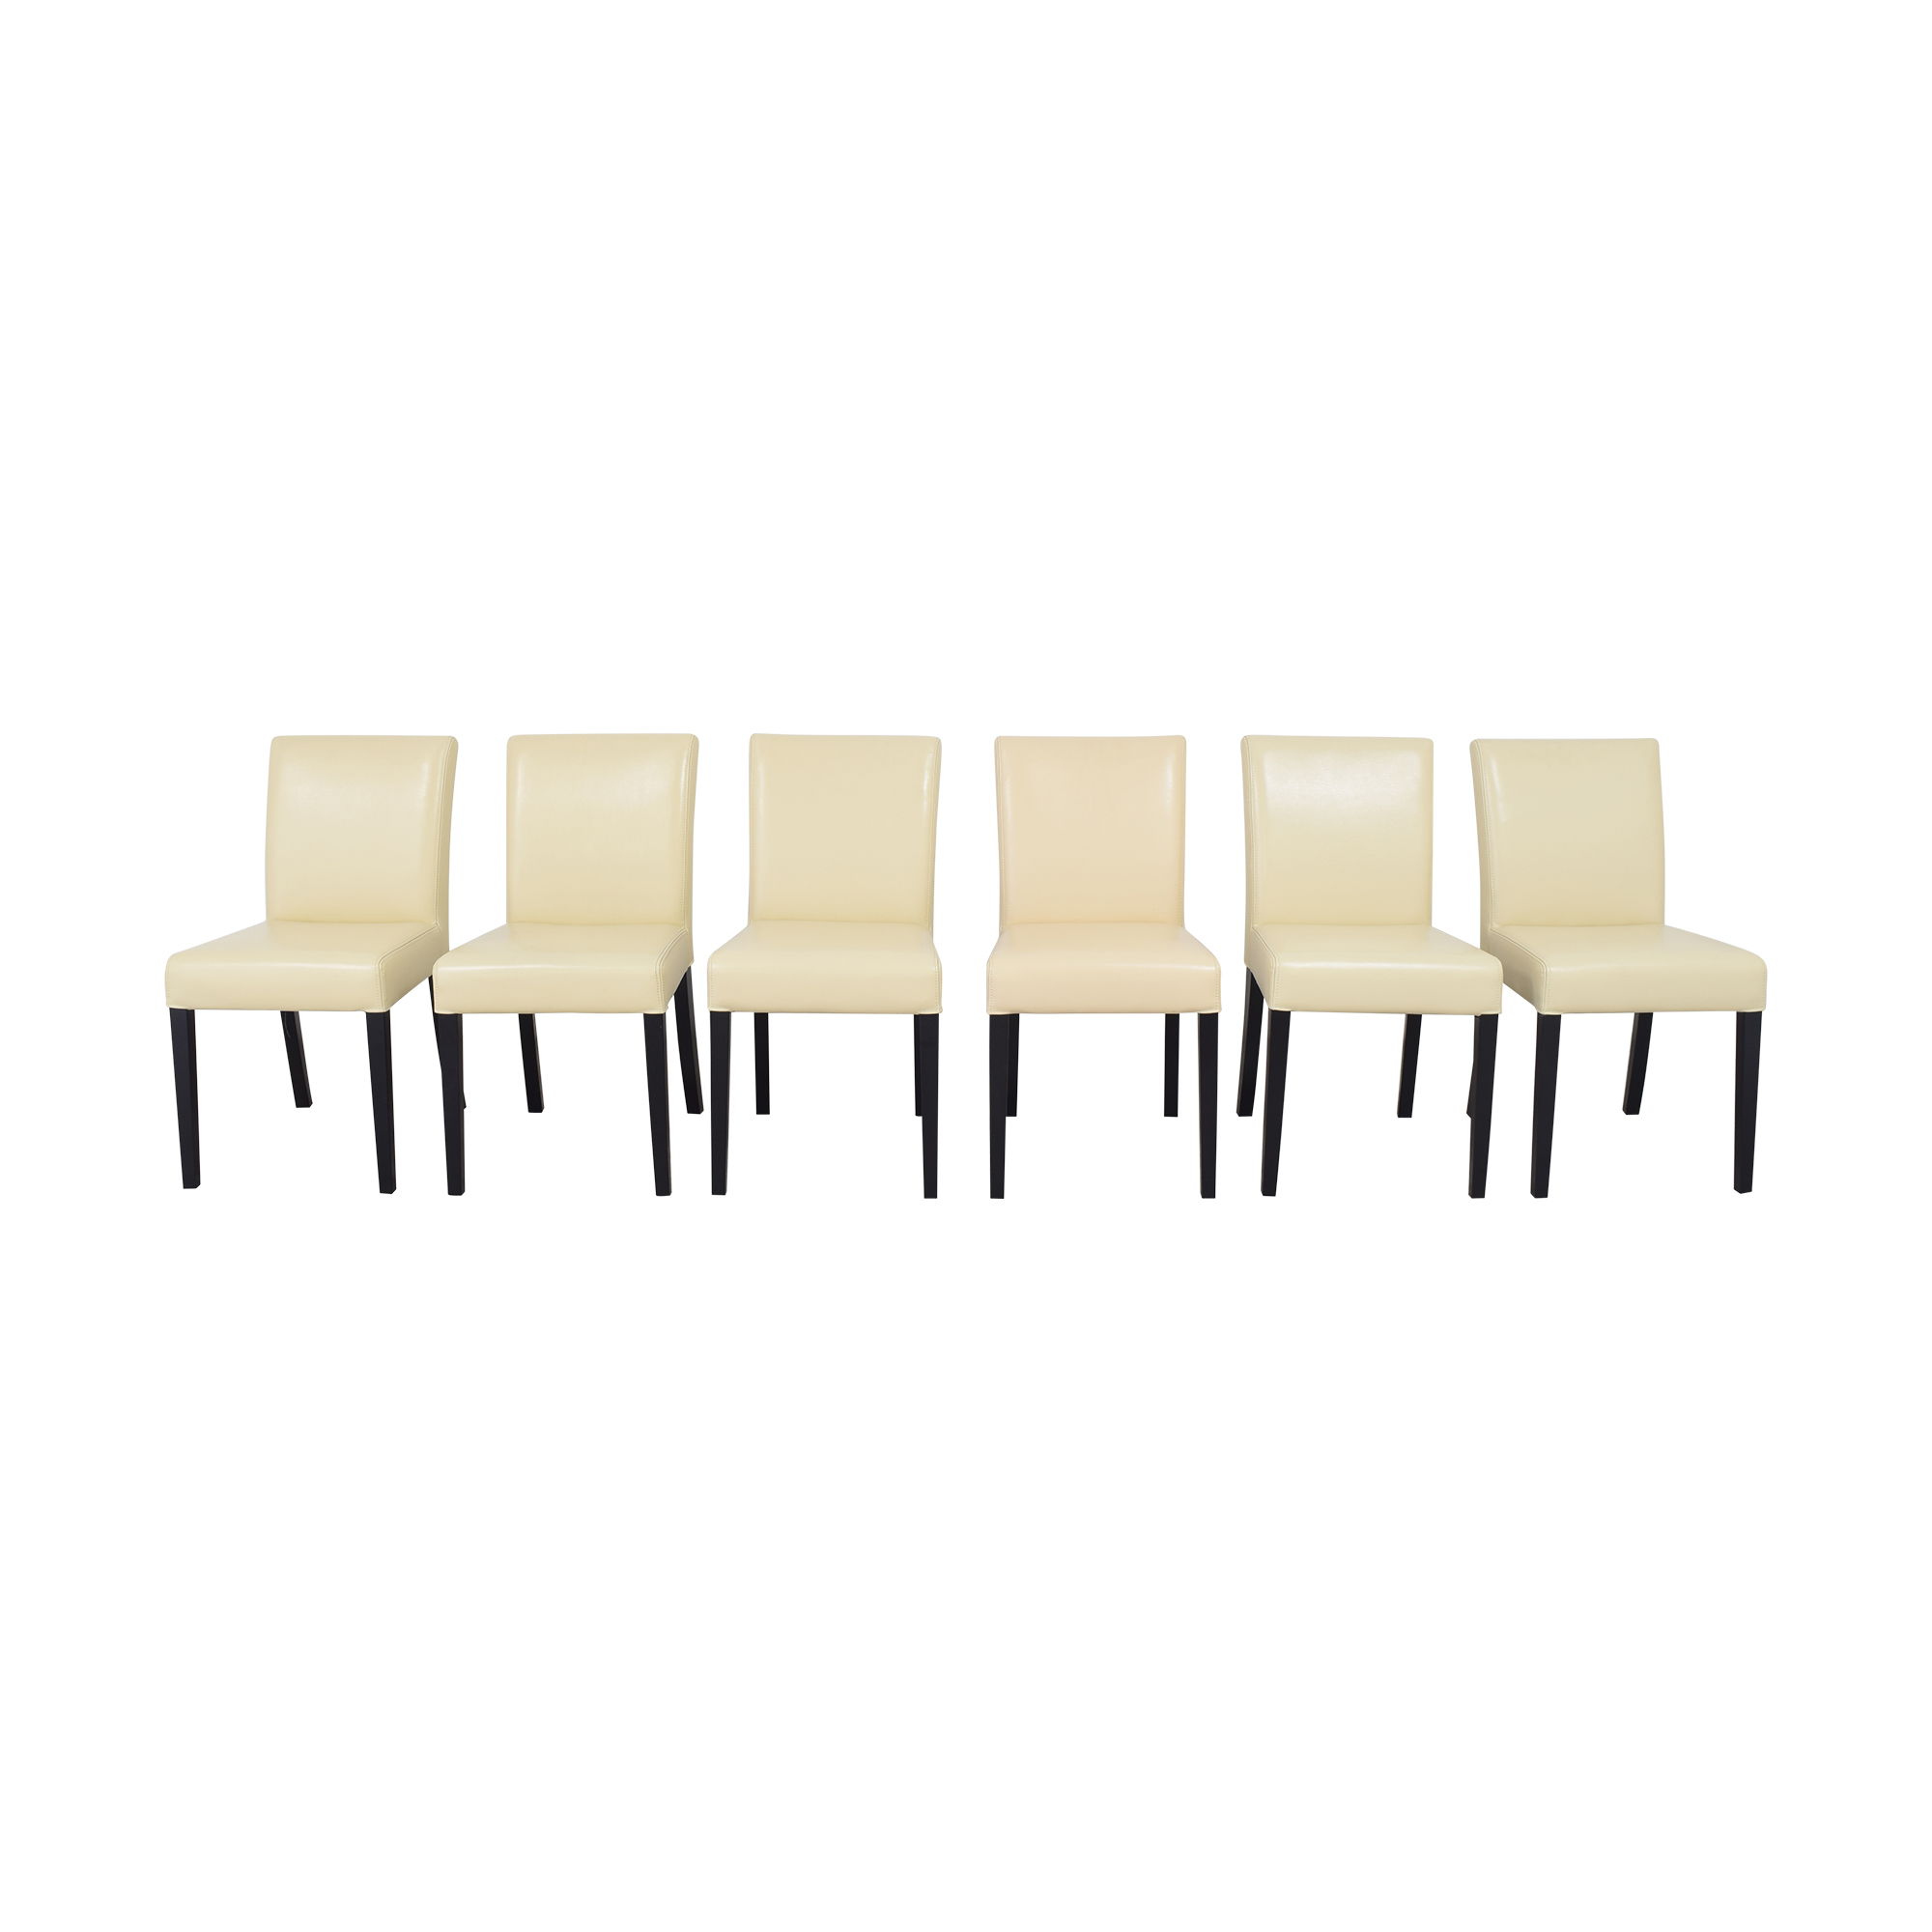 Crate & Barrel Crate & Barrel Lowe Dining Chairs ma